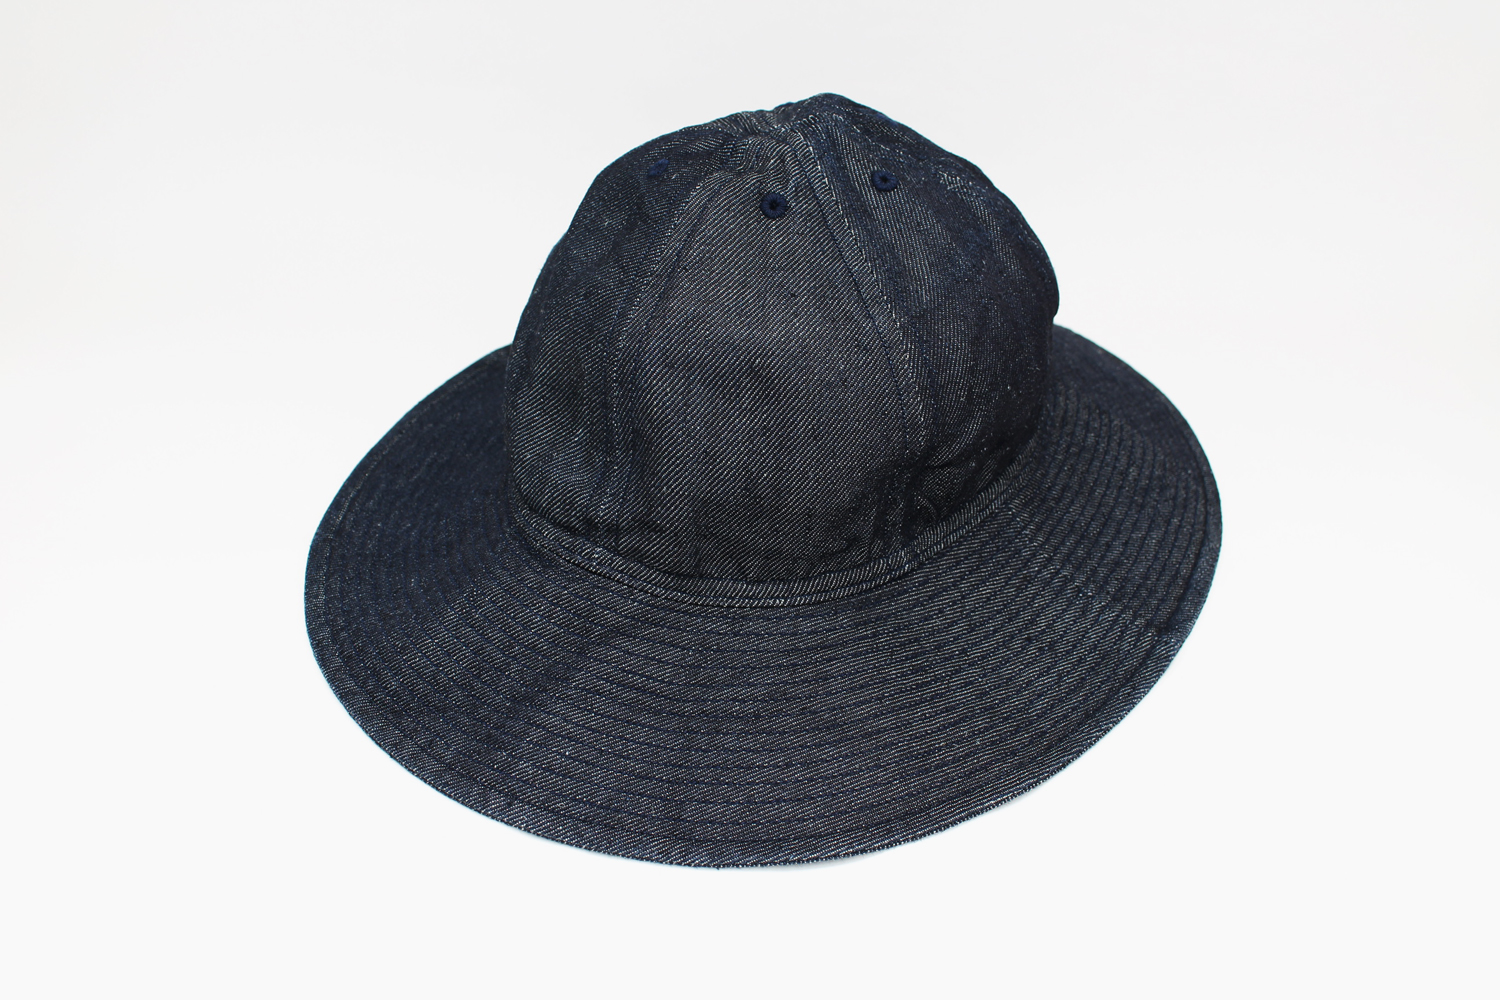 CAG_LINEN-DENIM-BALLON-HAT_c.NAVY_9500_1